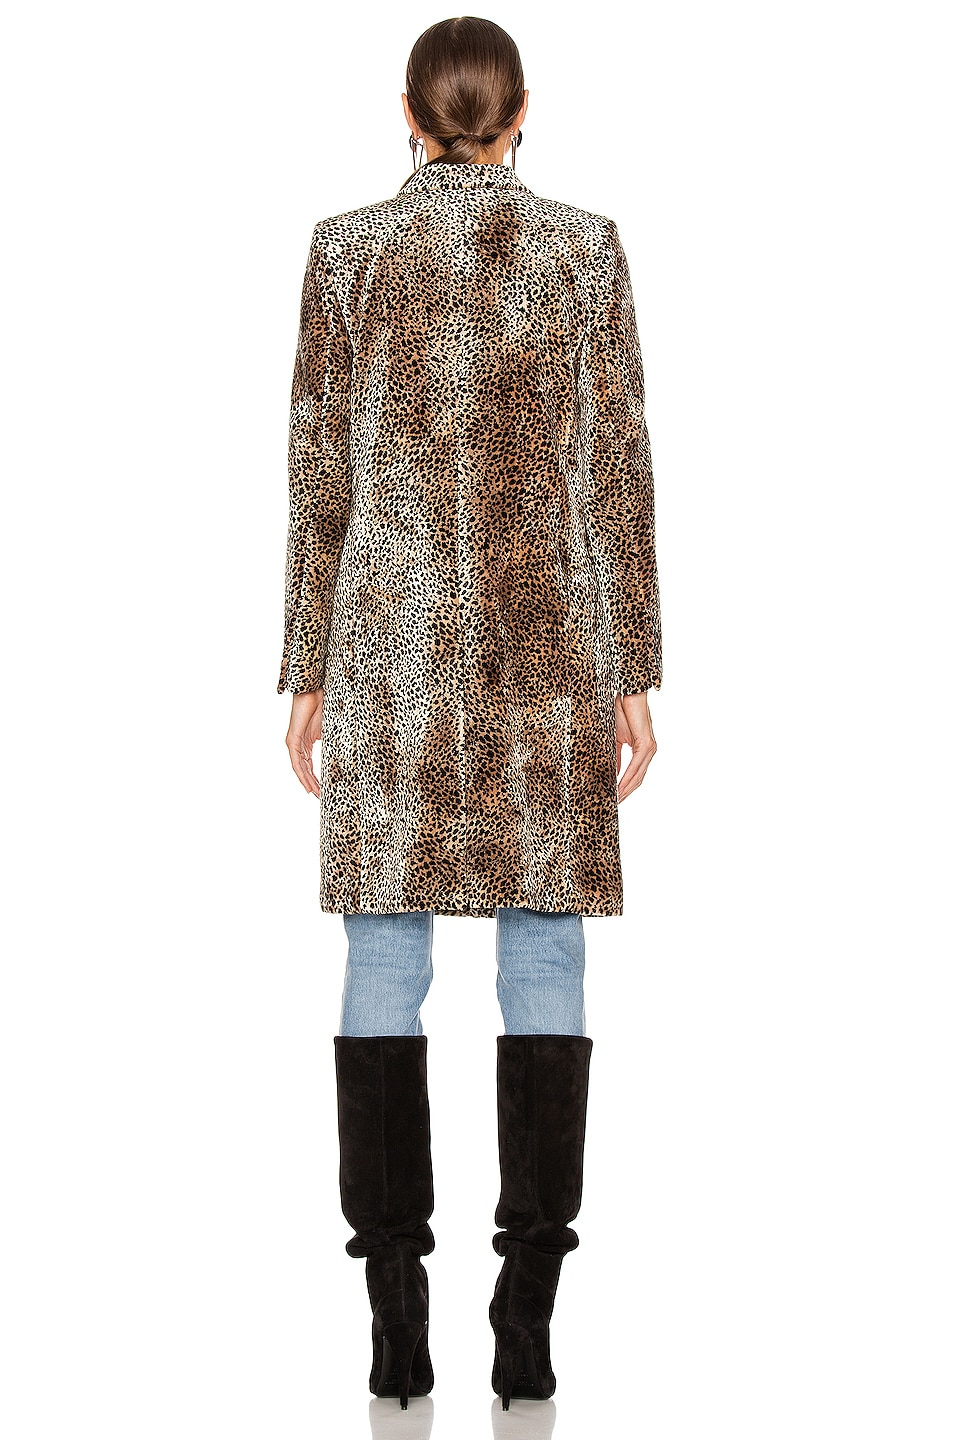 Image 4 of Saint Laurent Leopard Coat in Beige & Black